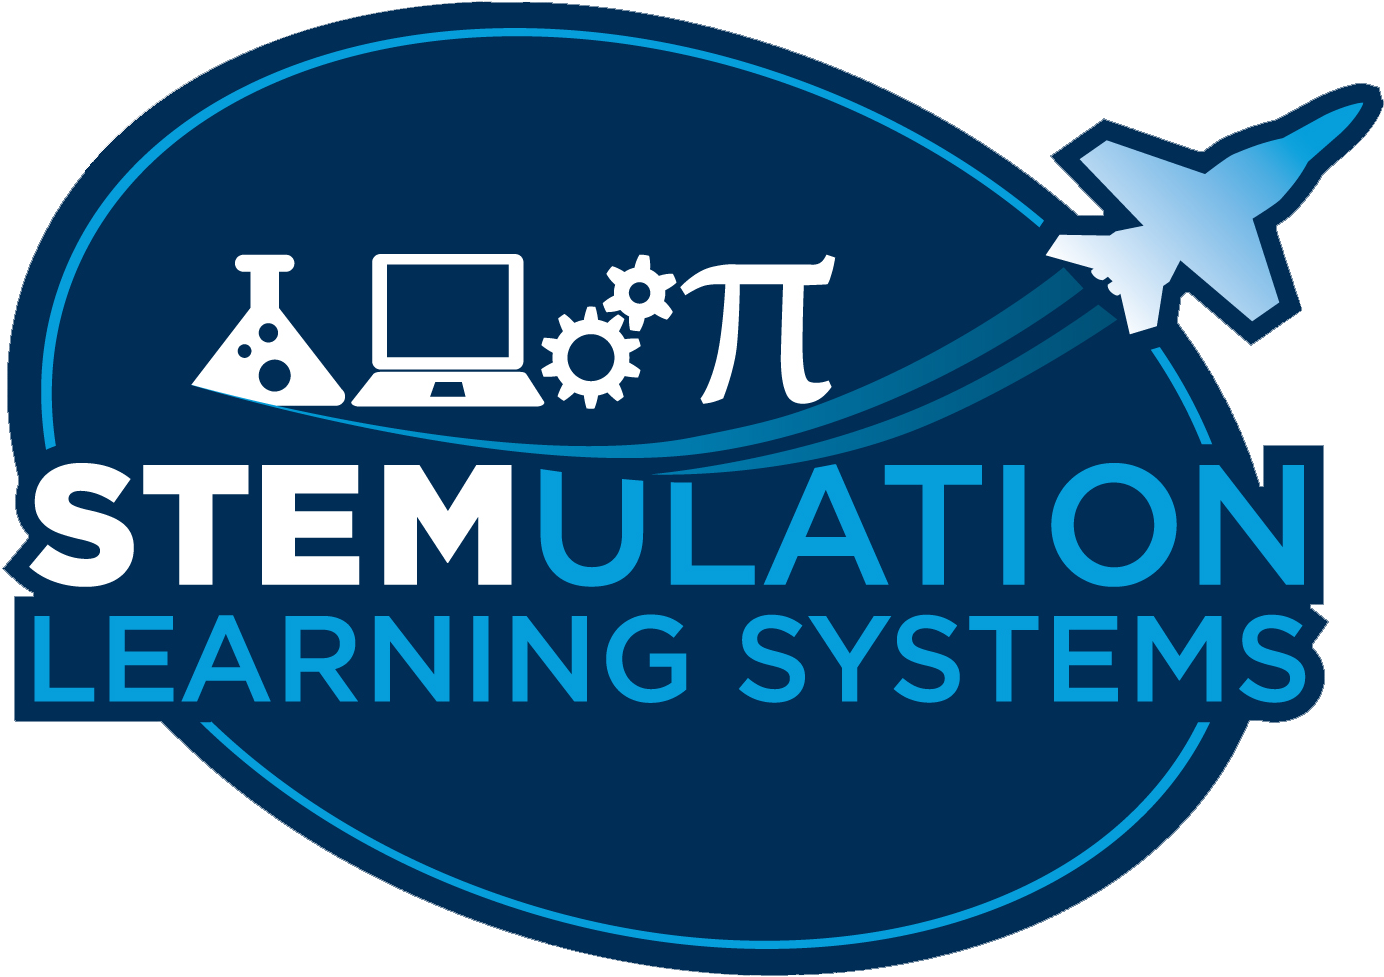 STEMulation Learning Systems